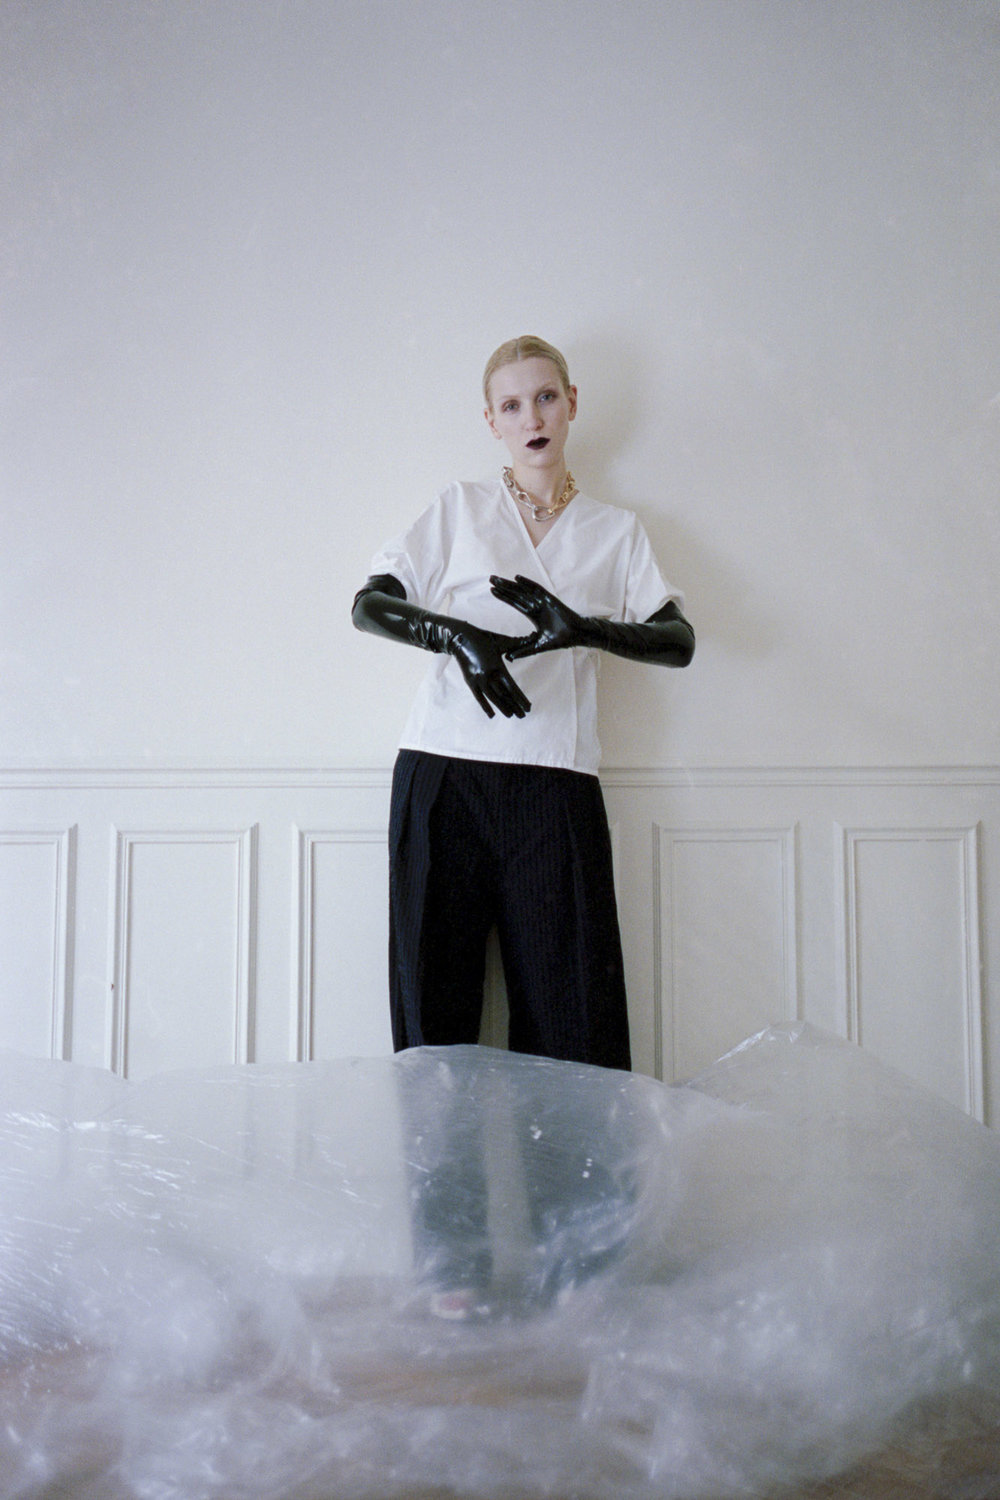 Shirt by Maison Cleo, trousers Petia Zorec, gloves Stylit's own